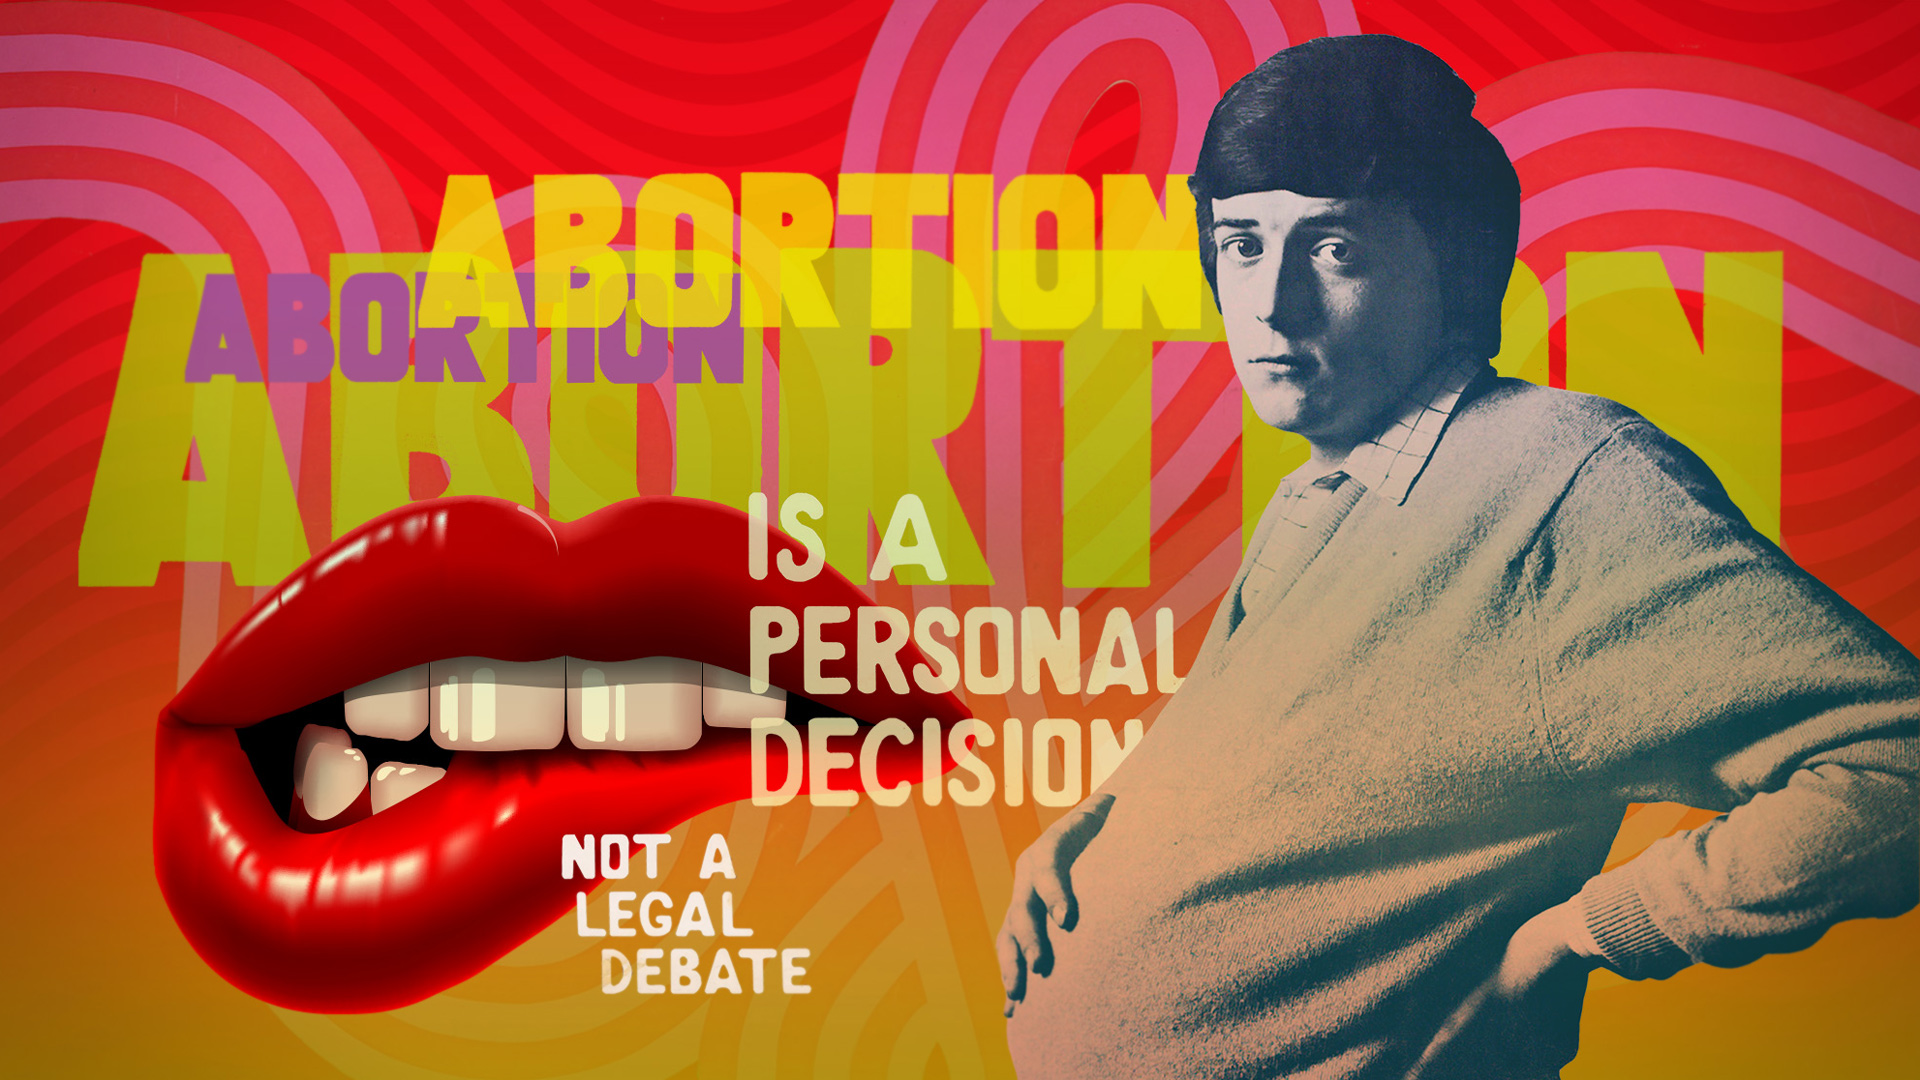 The V&A museum, Revolution exhibition, motion graphics design, london, 60's, sixties, records and rebels, roxanne silverwood, abortion, womens rights, feminism